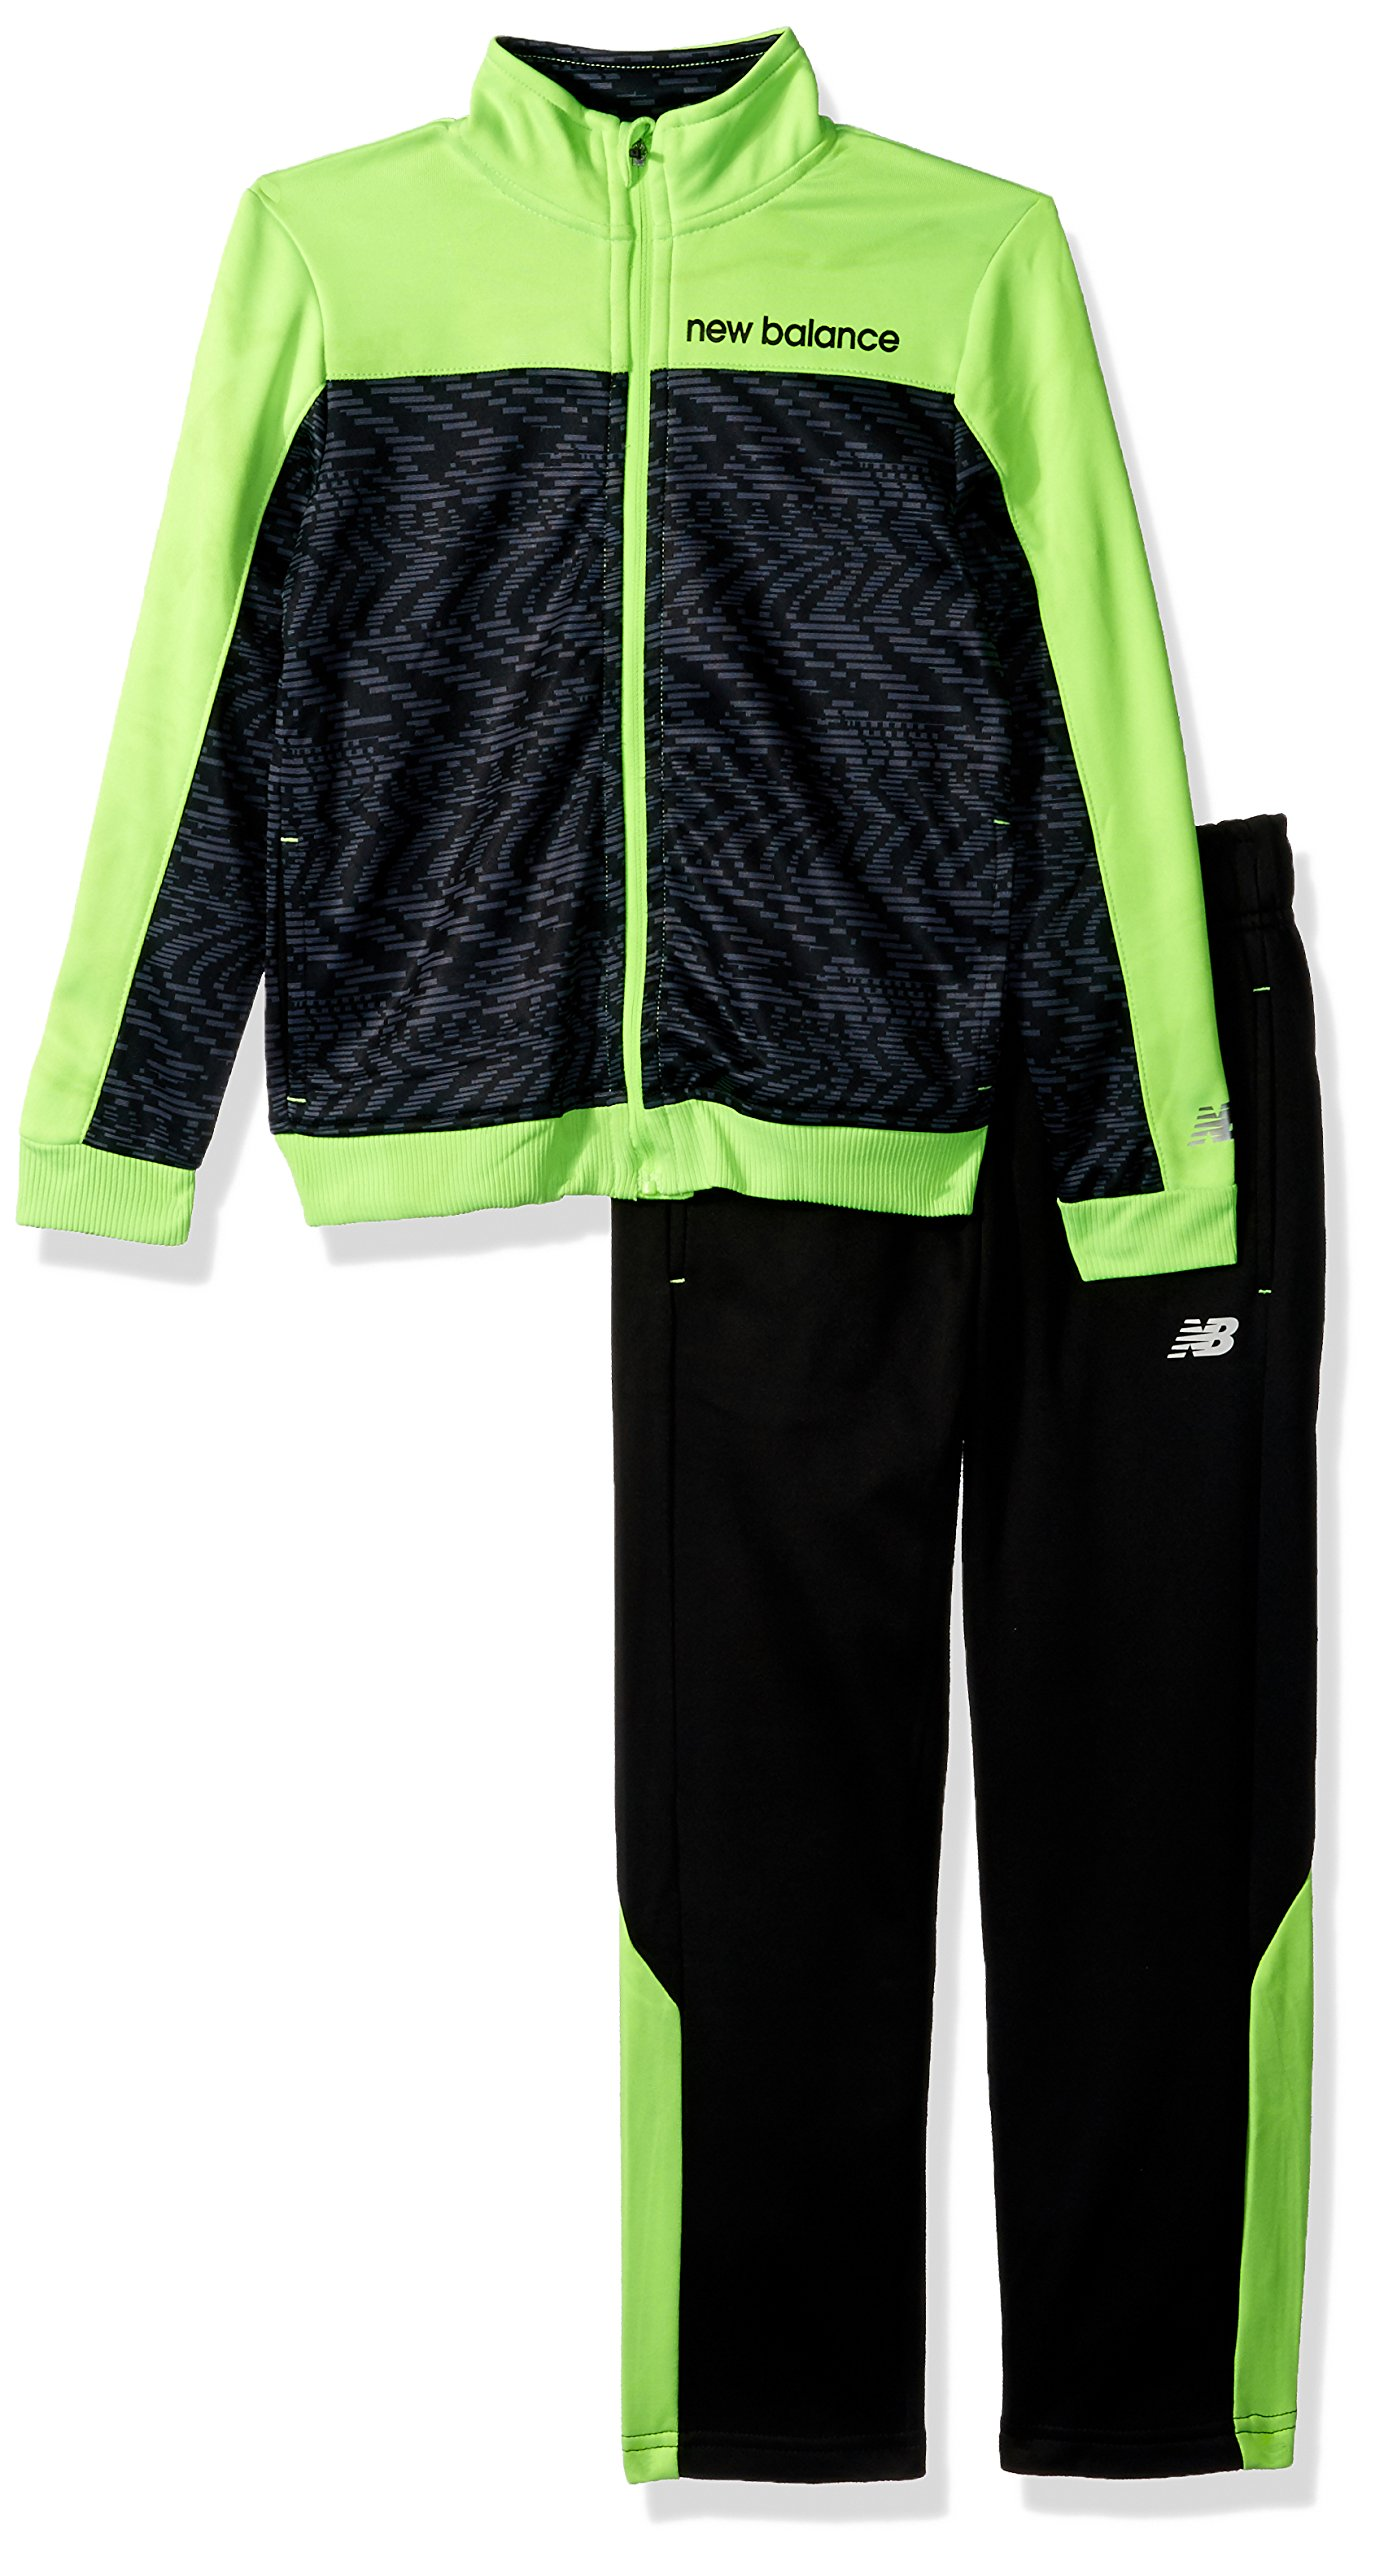 New Balance Boys' Toddler Athletic Jacket and Pant